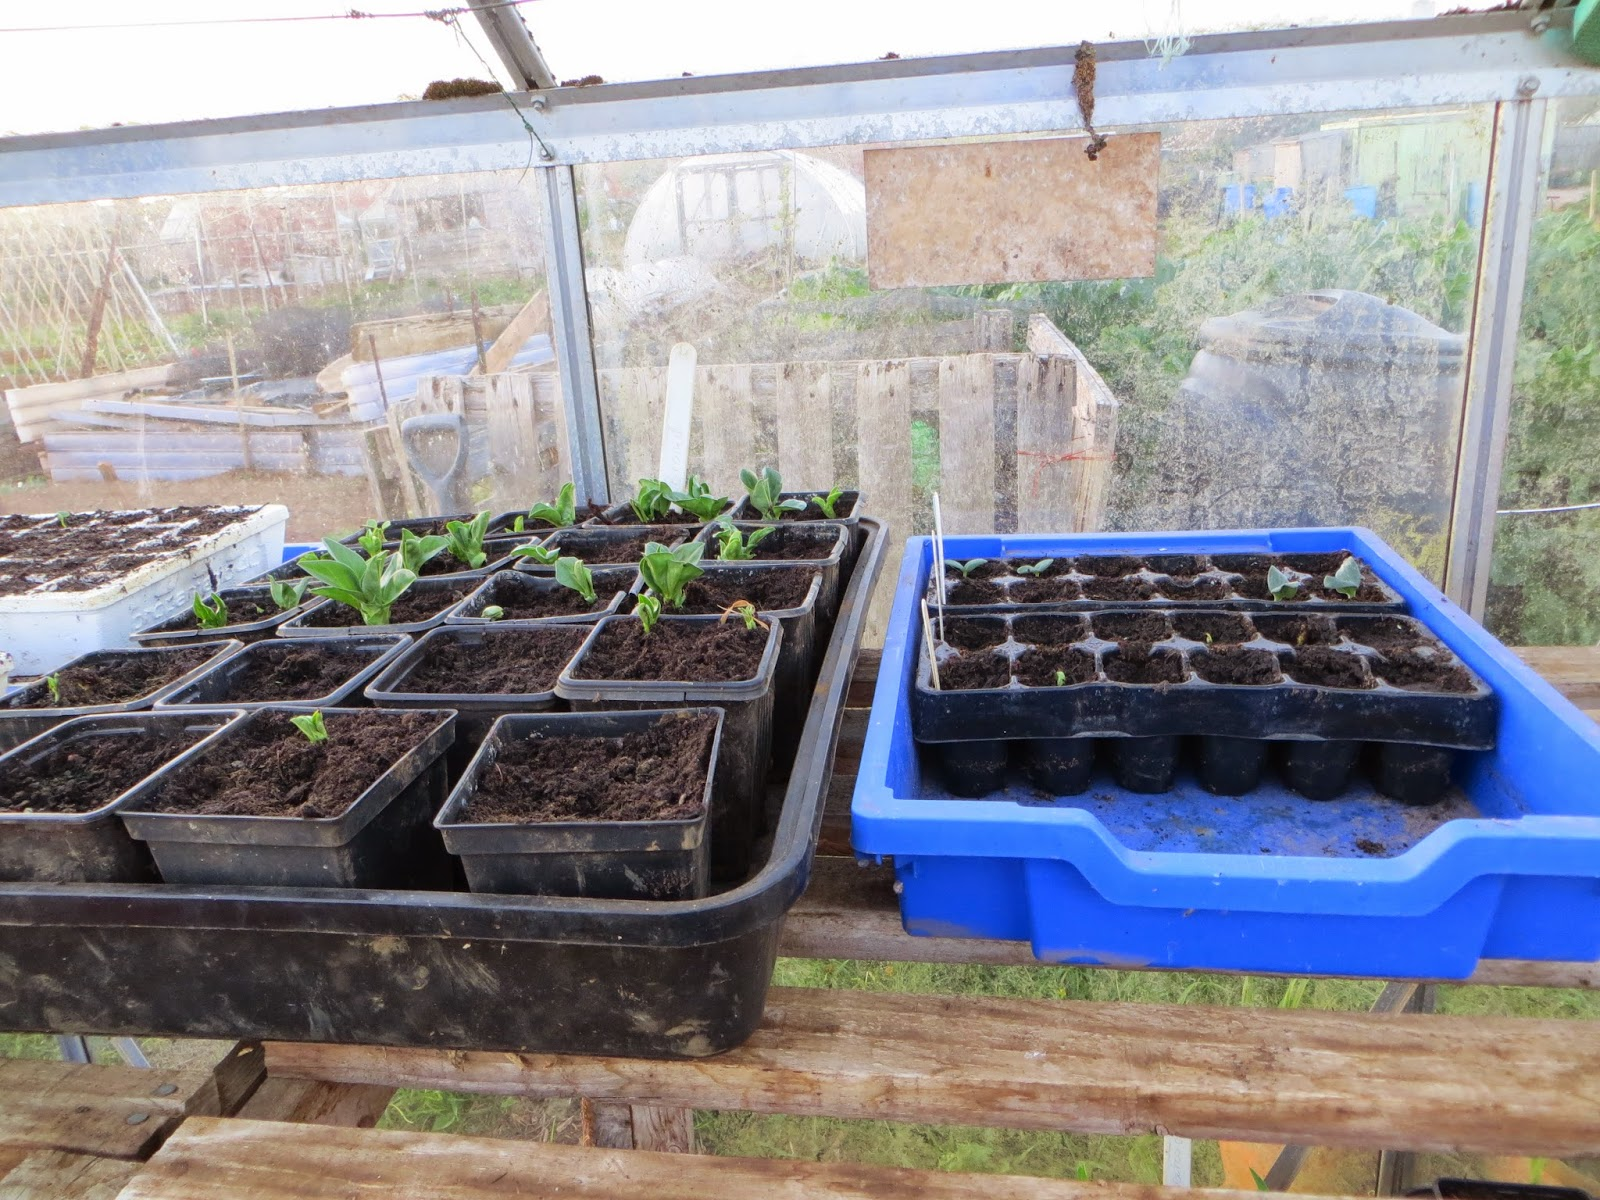 a variety of peppers and broad beans.